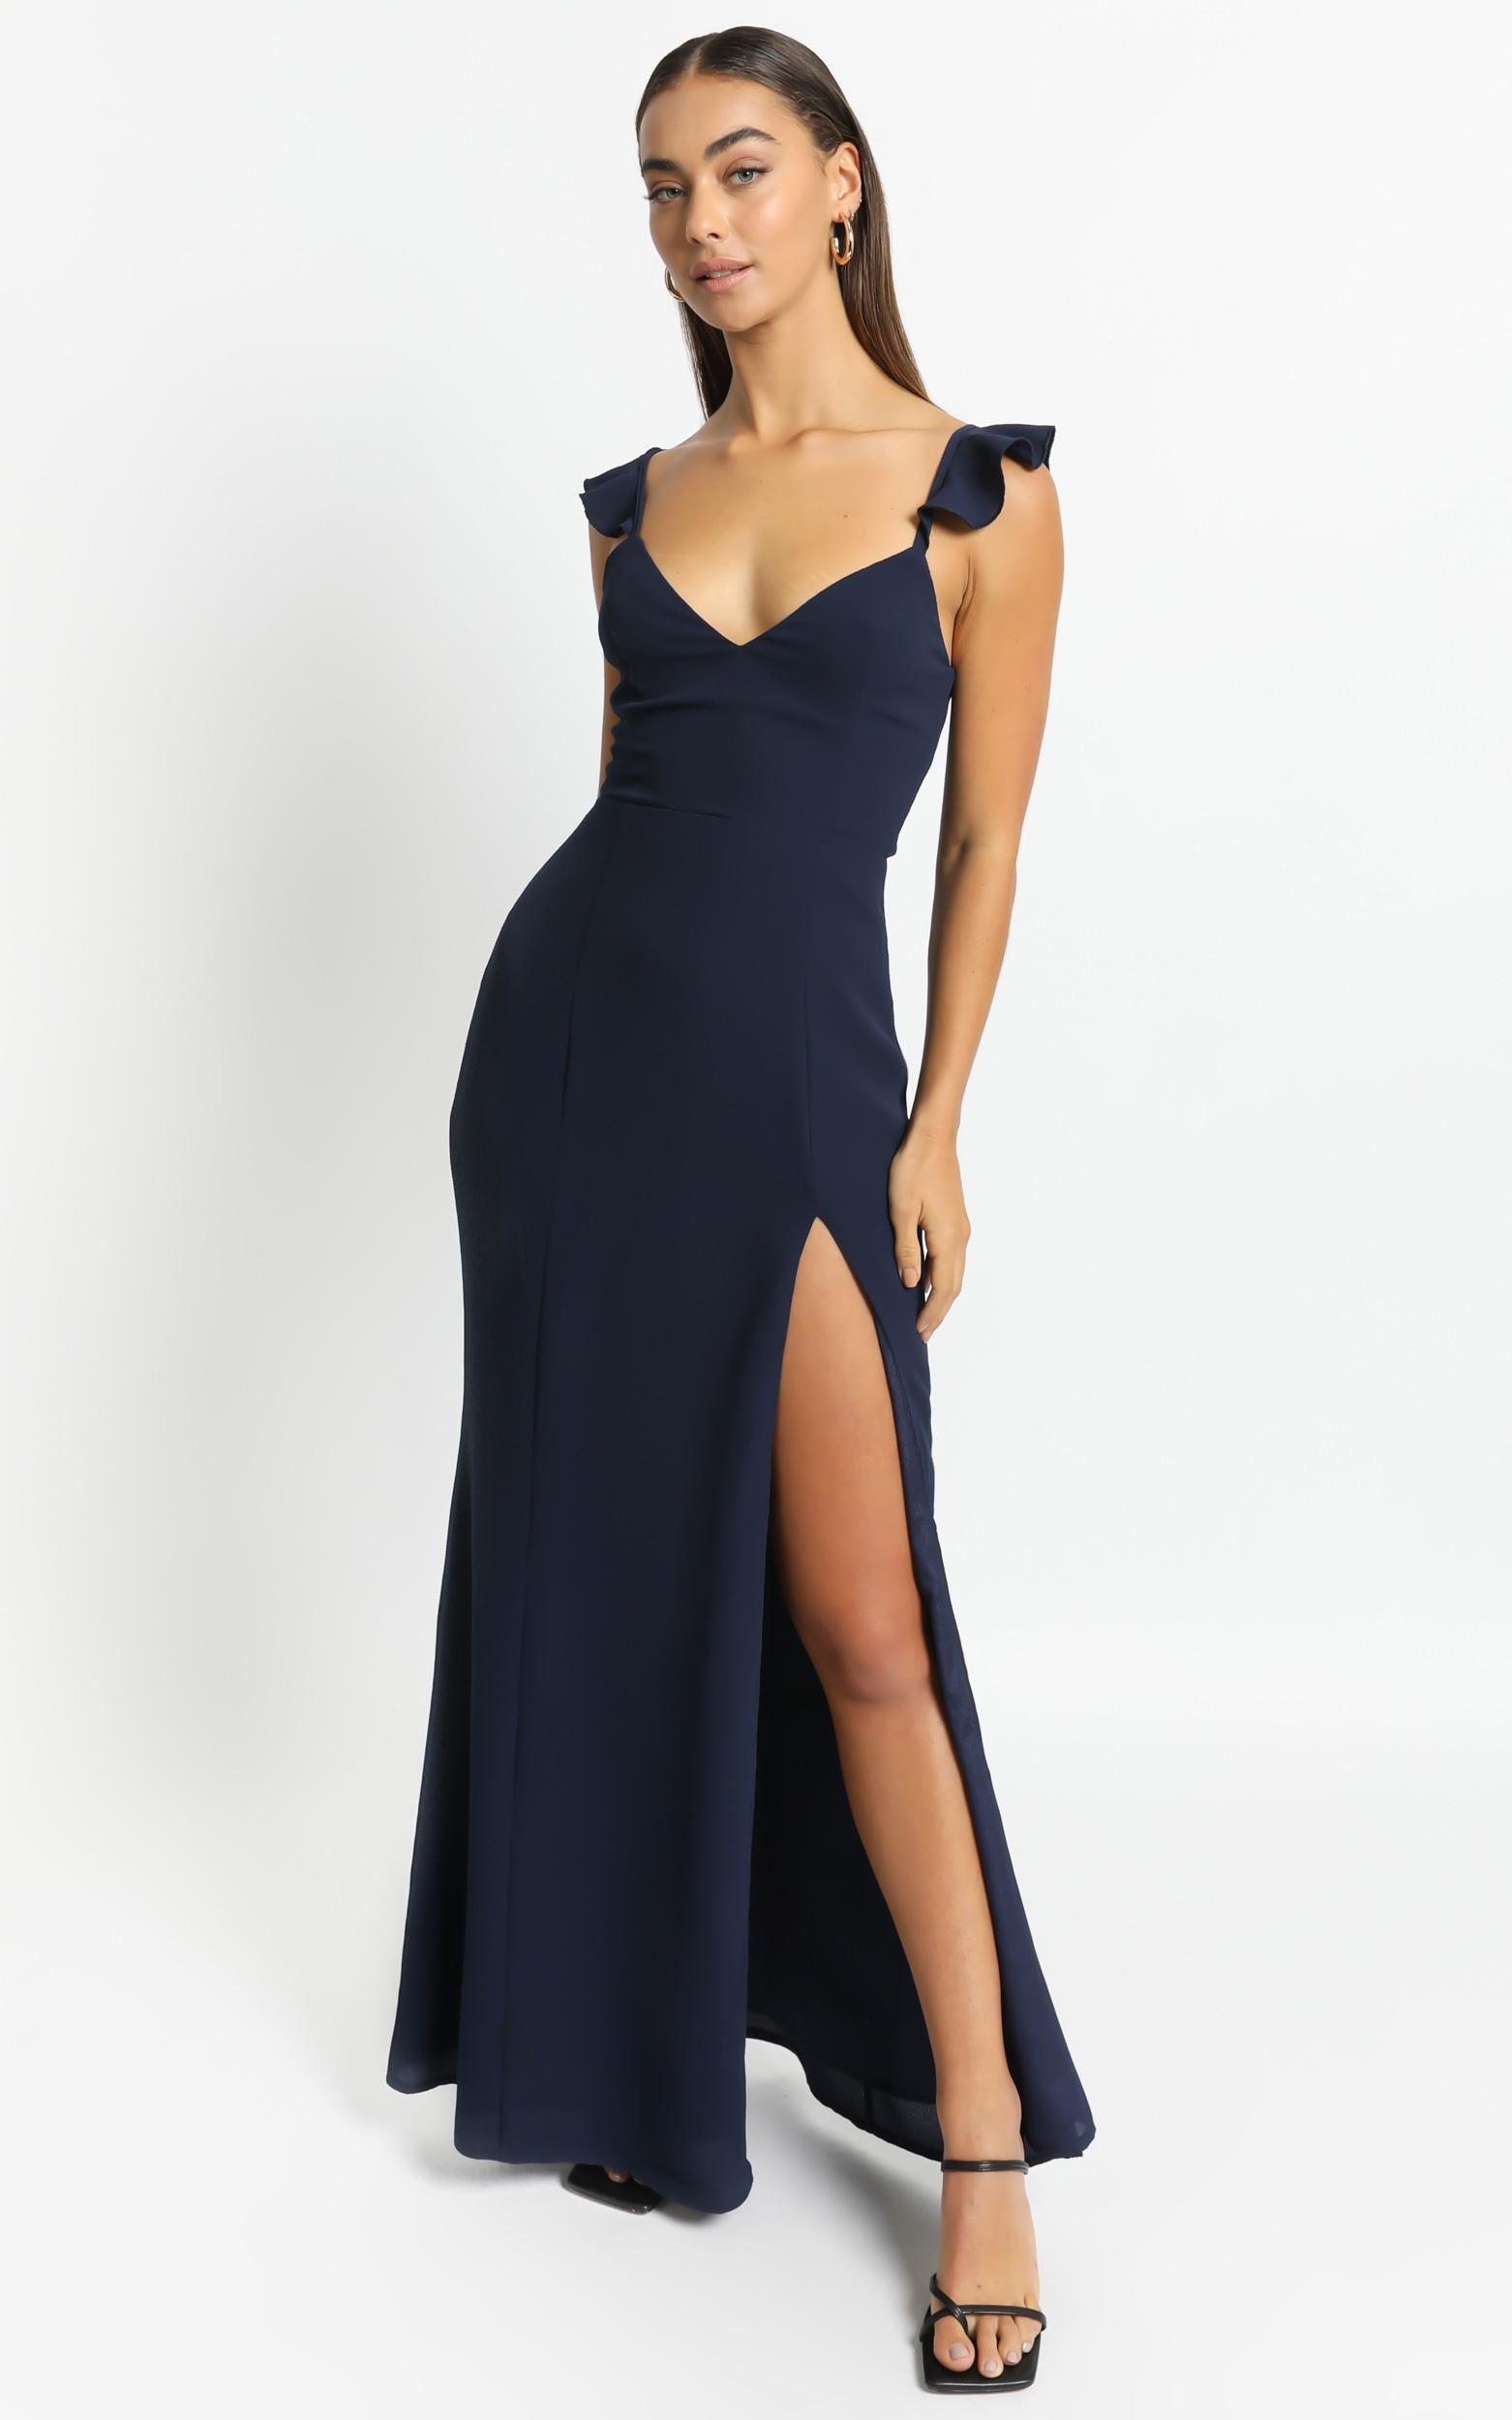 More Than This Dress In Navy - 4 (XXS), Navy, hi-res image number null